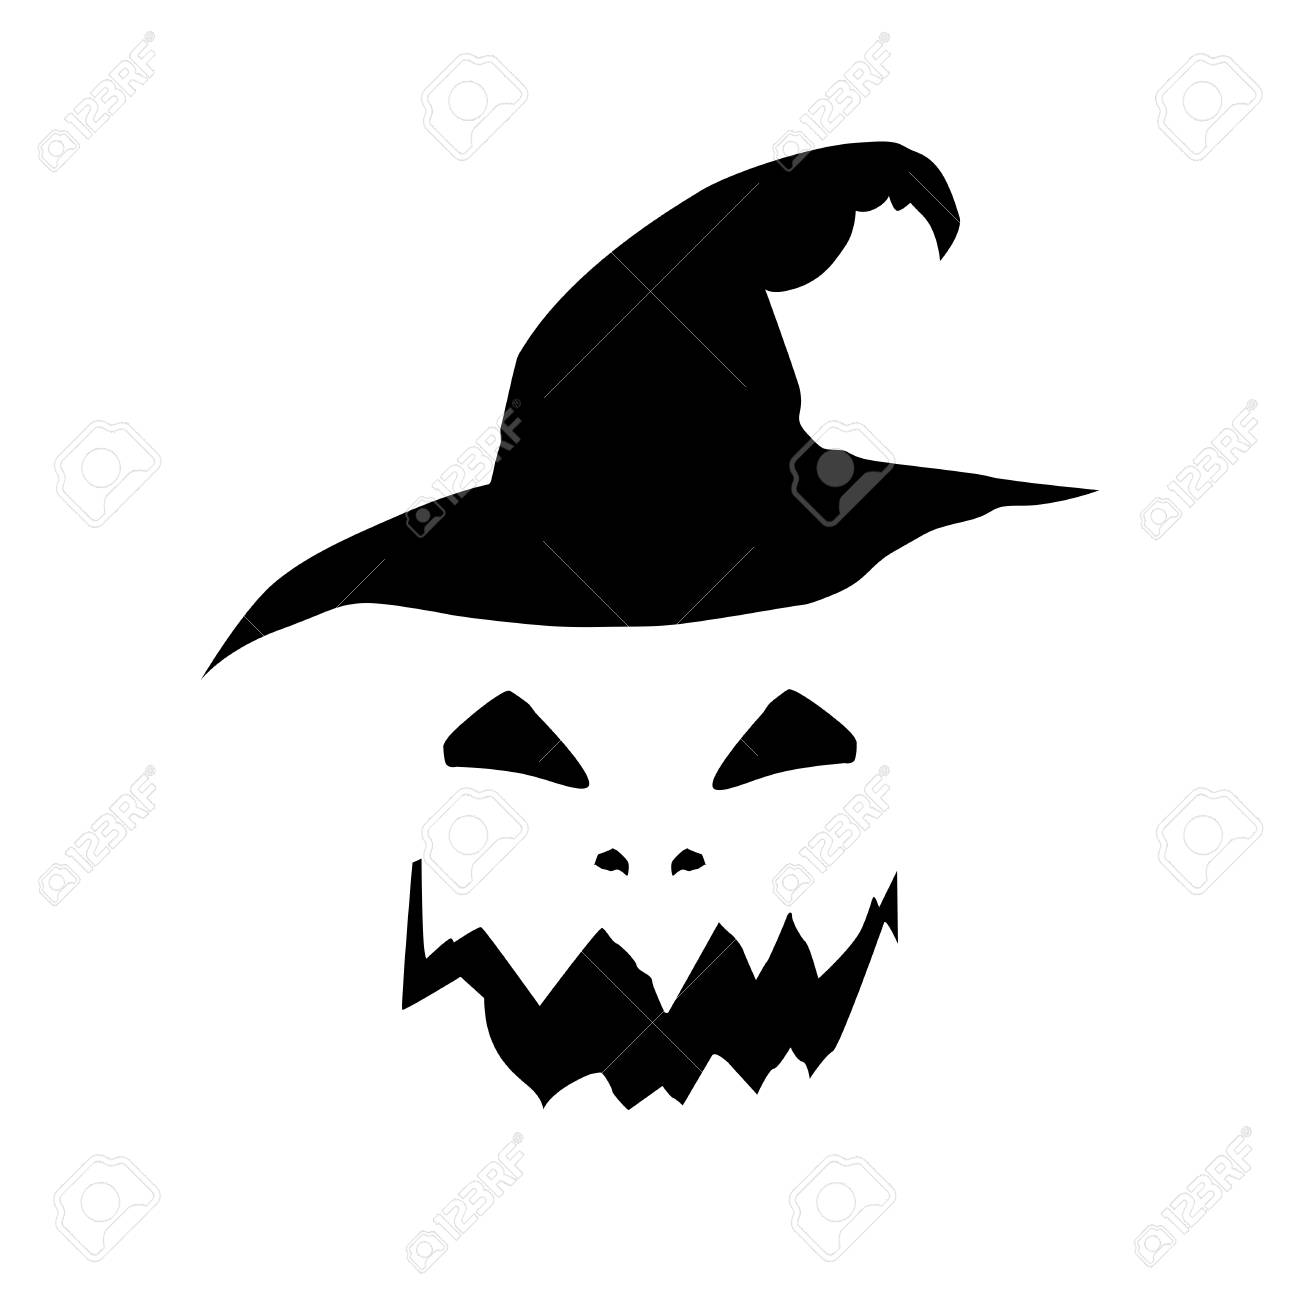 Halloween Vector Black And White.Halloween Vector Illustration Of Scary Pumpkin Jack Face And